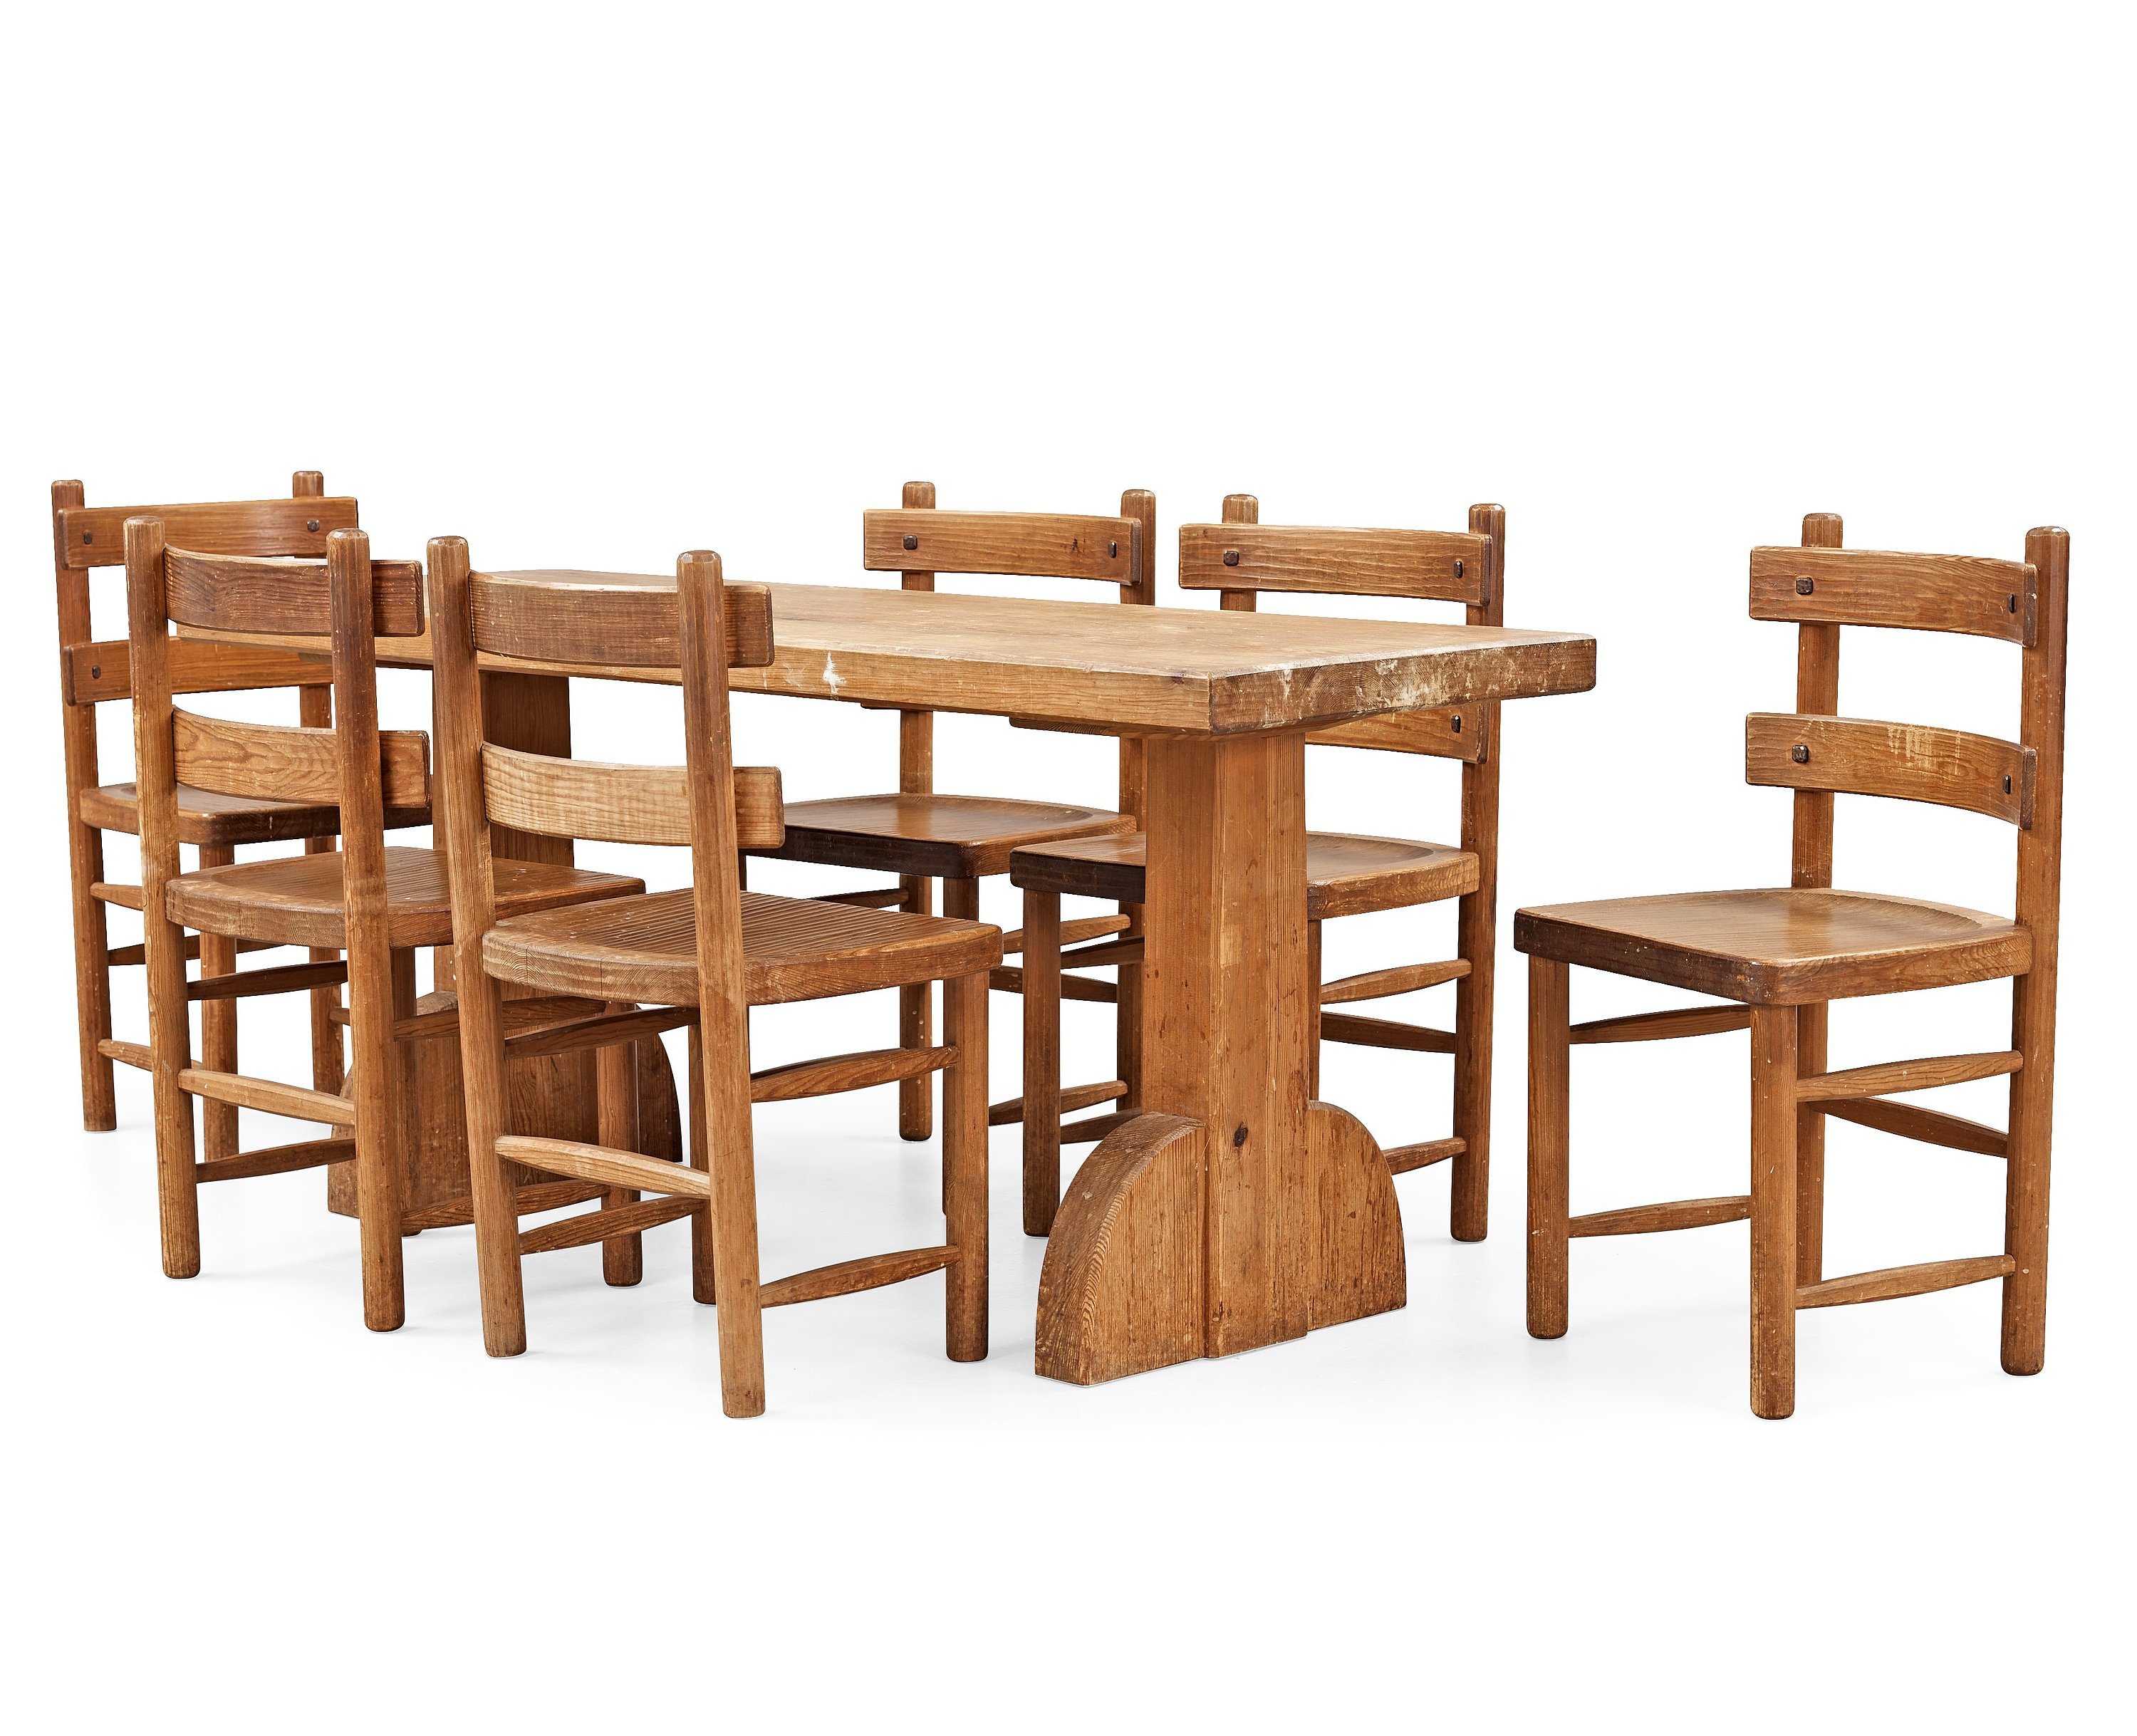 An Axel Einar Hjorth Stained Pine Dining Set U0027Sandhamnu0027, Nordiska  Kompaniet, Sweden 1931 33.   Bukowskis